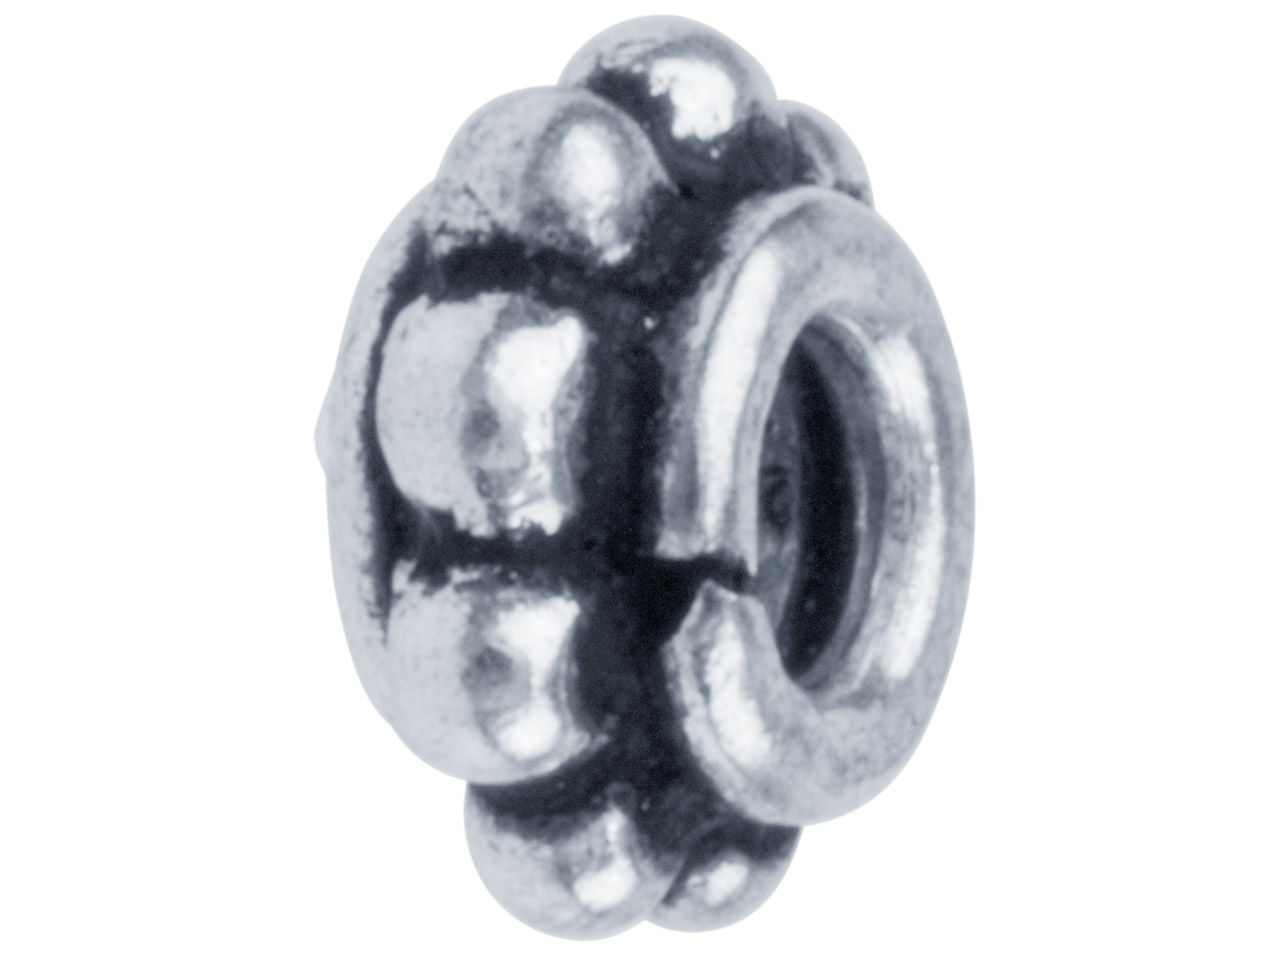 Silver Plated Decorative Spacer 7mm Beads, Pack of 50